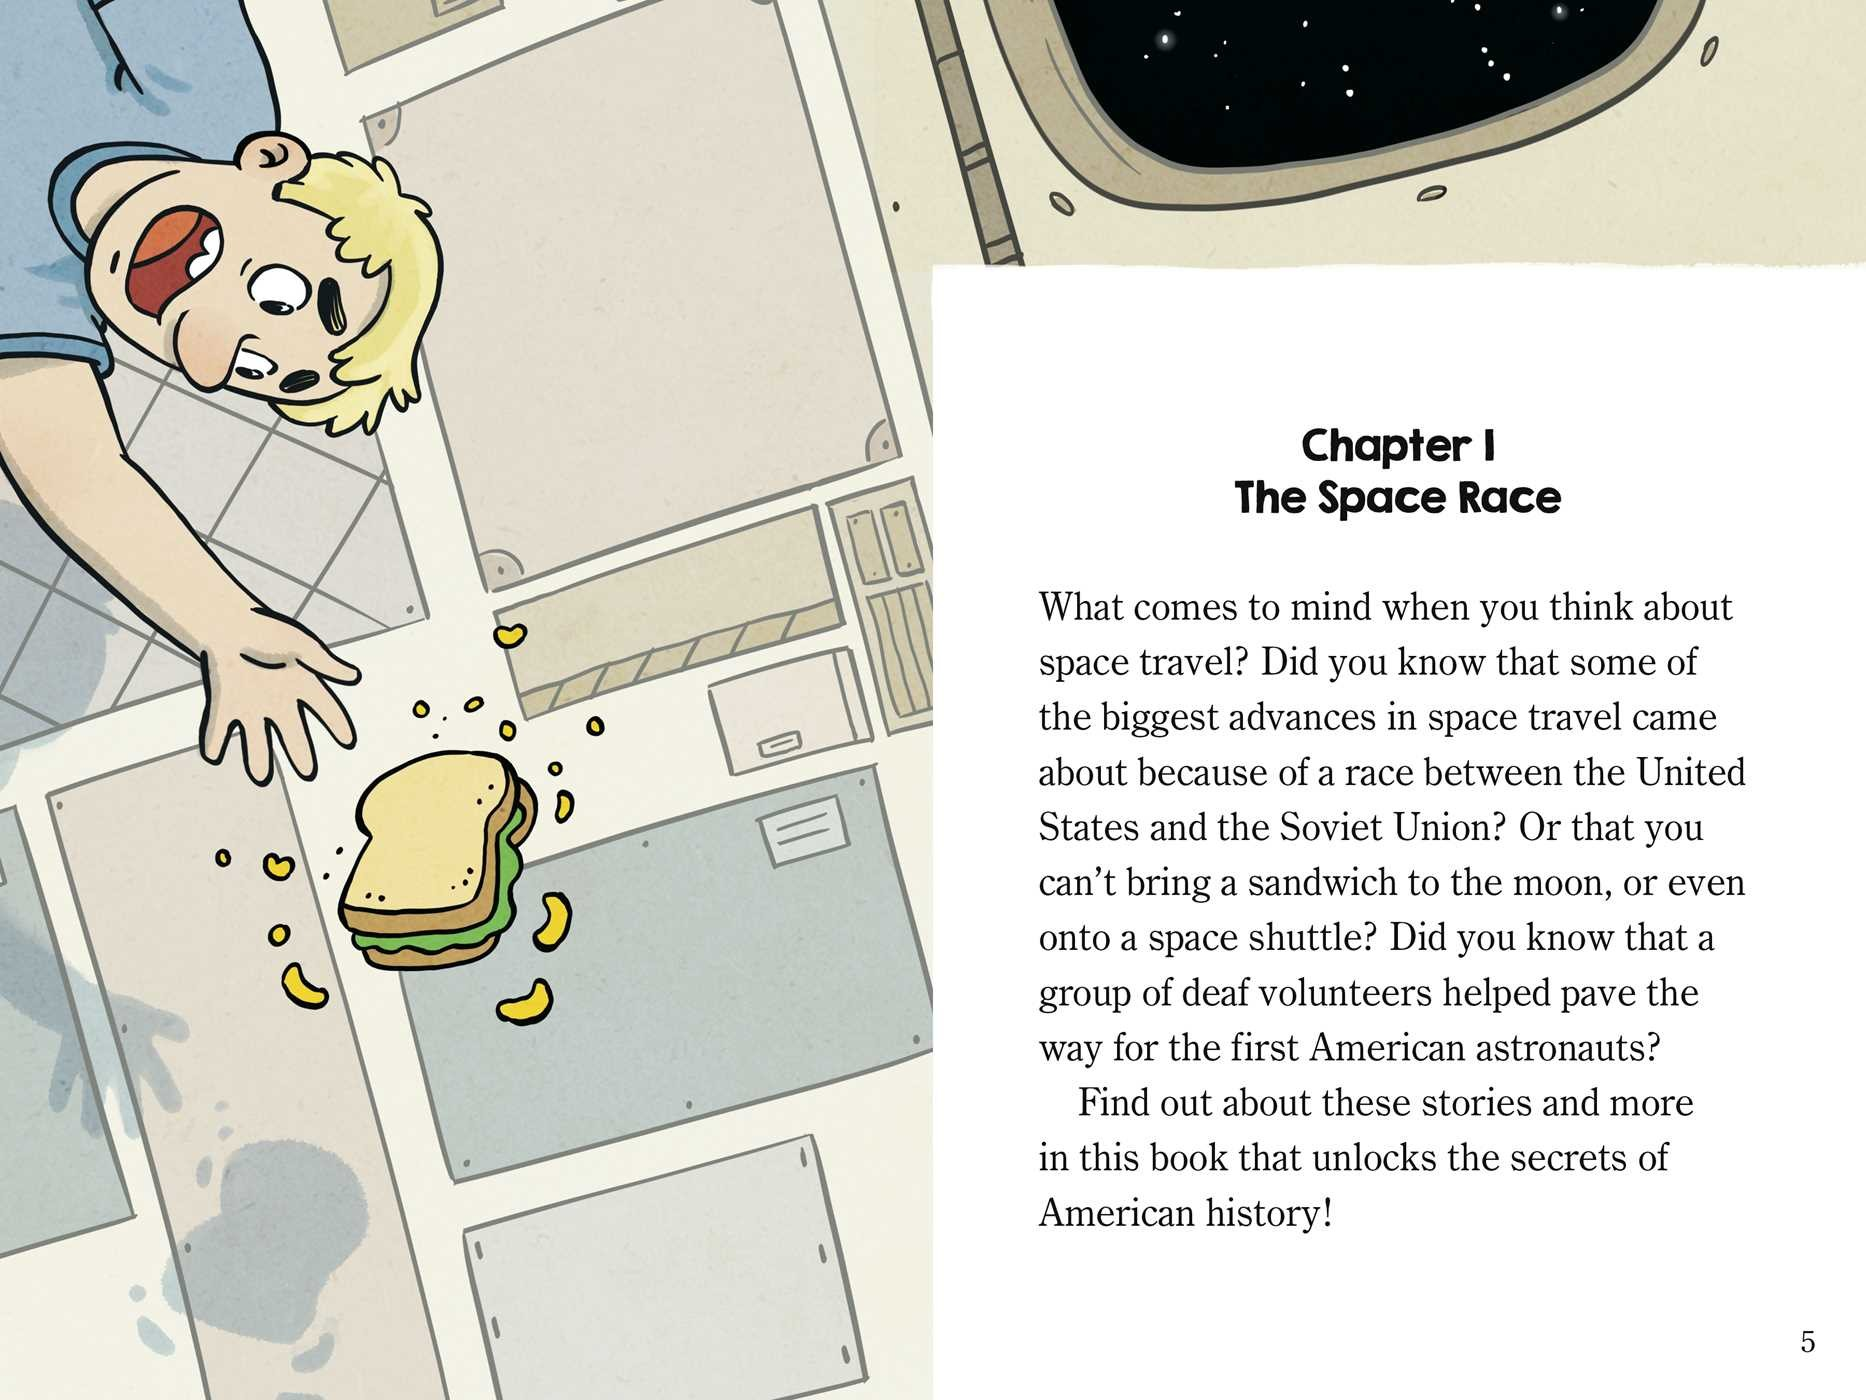 You can t bring a sandwich to the moon and other stories about space 9781534417809.in01